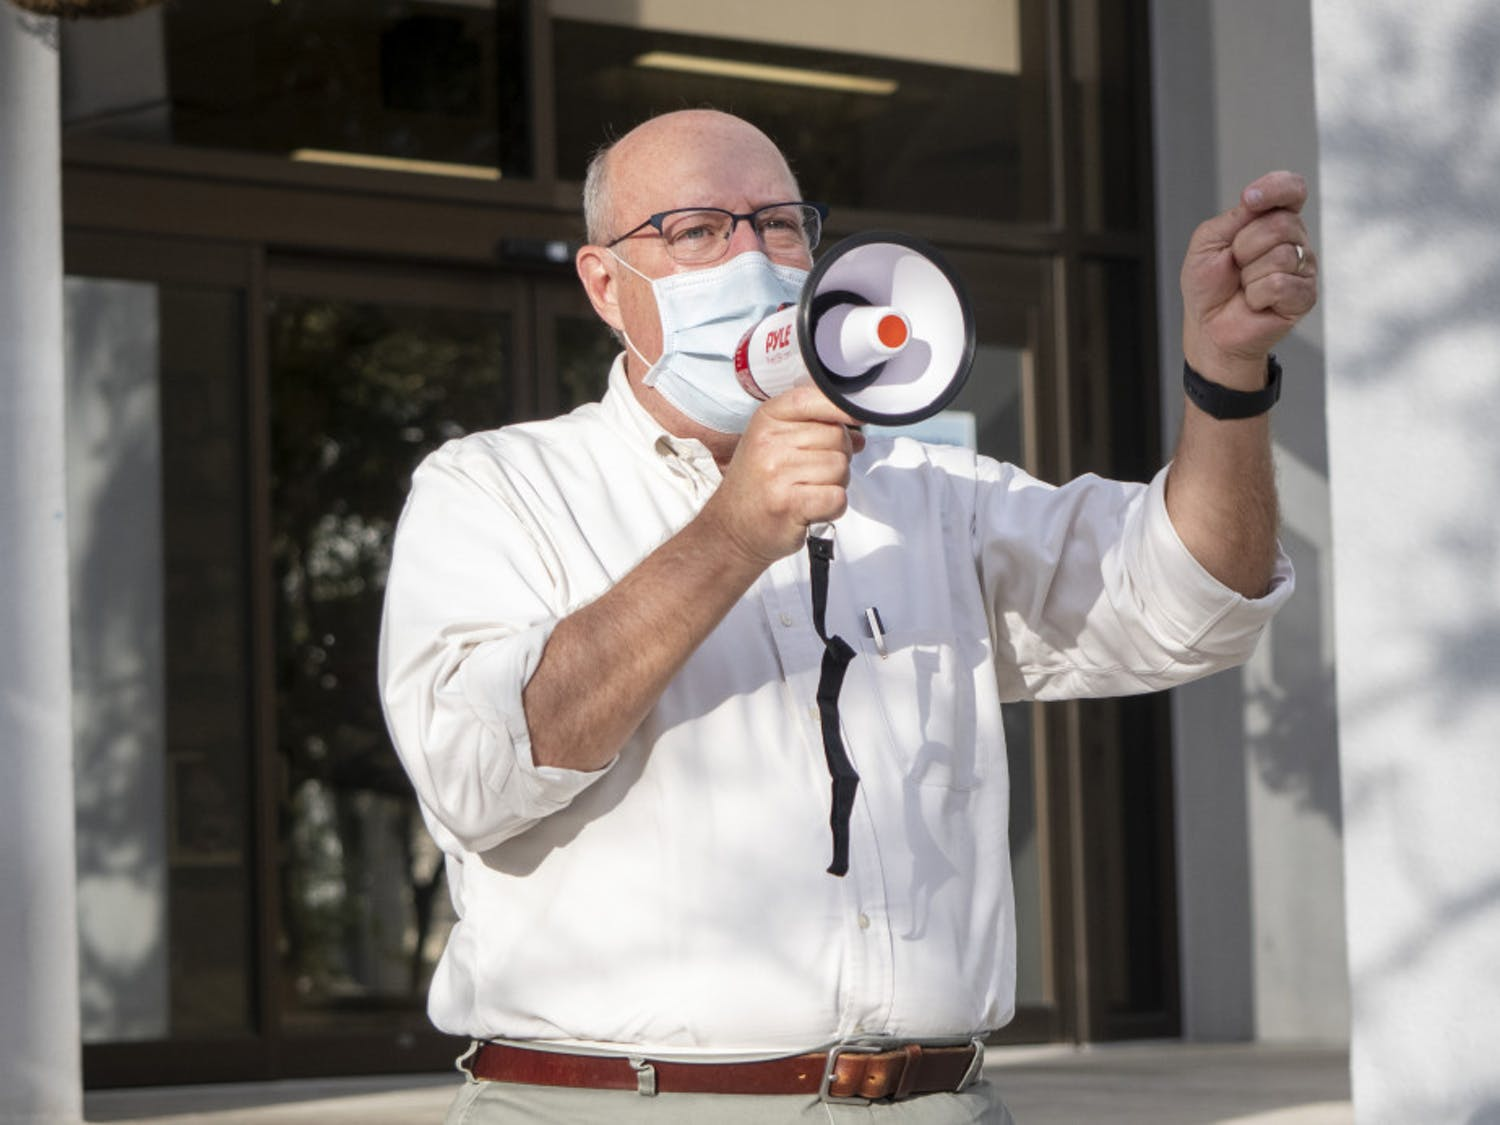 """Gainesville Commissioner for district 2, Harvey Ward, is seen giving a short speech during the """"Protect the Results"""" rally held at the Alachua City Hall on Wednesday, Nov. 4, 2020. (Emily Felts/Alligator Staff)"""